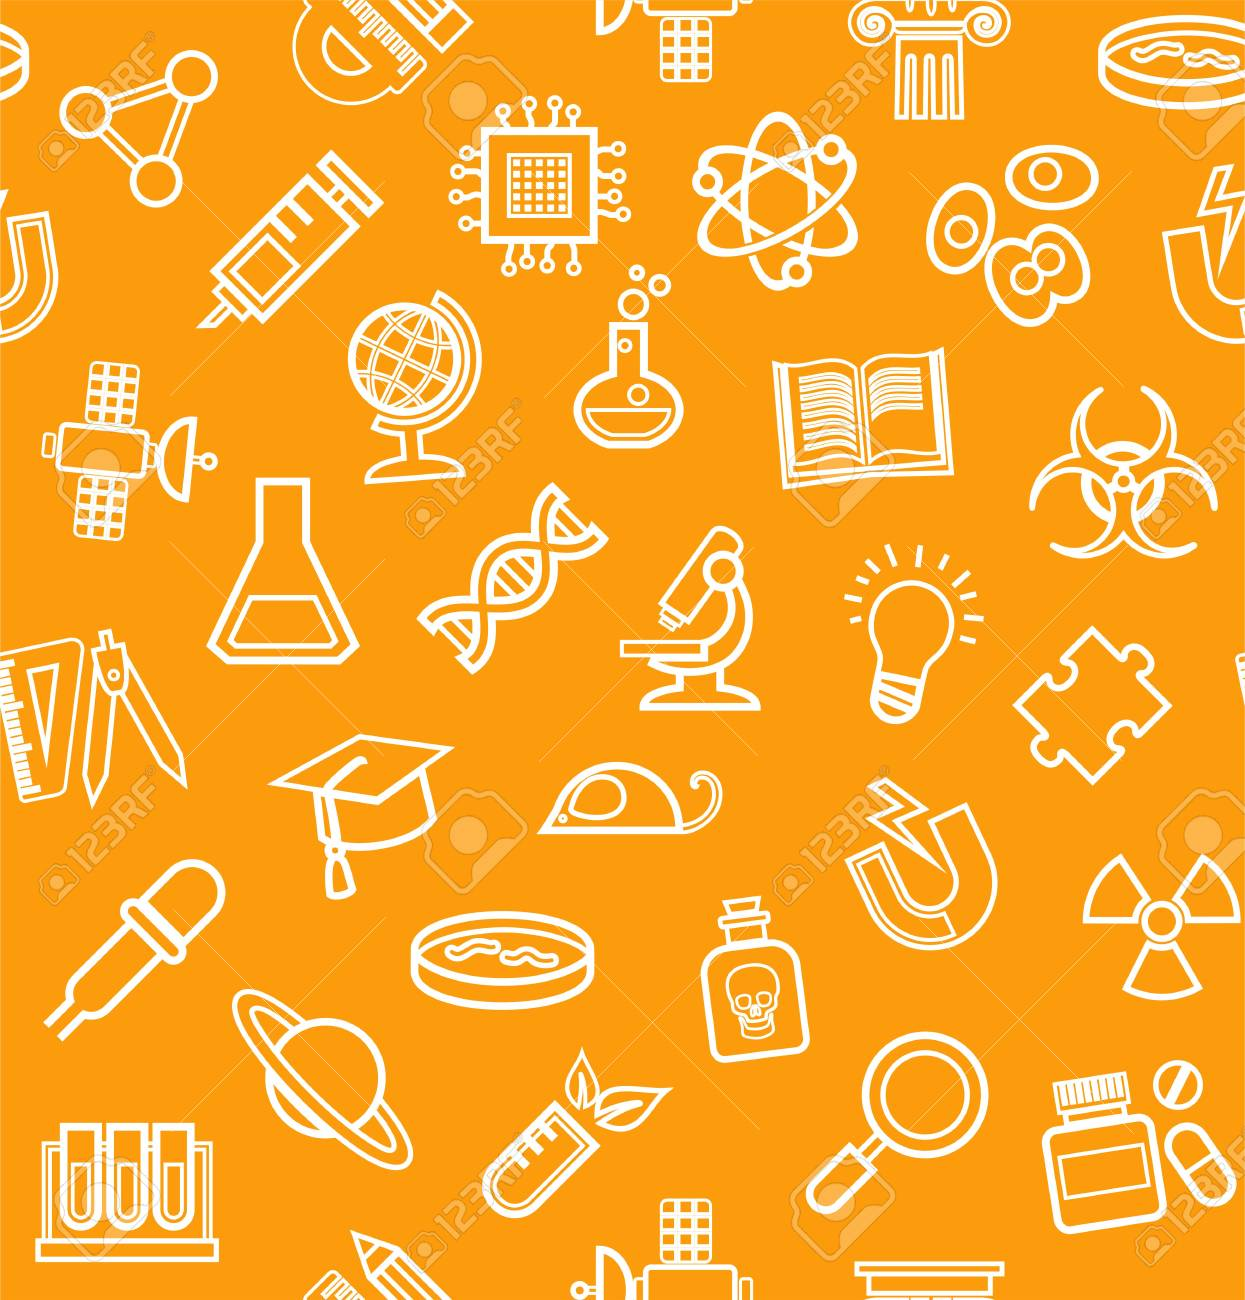 Science, orange background, outline icons, monochrome, seamless,